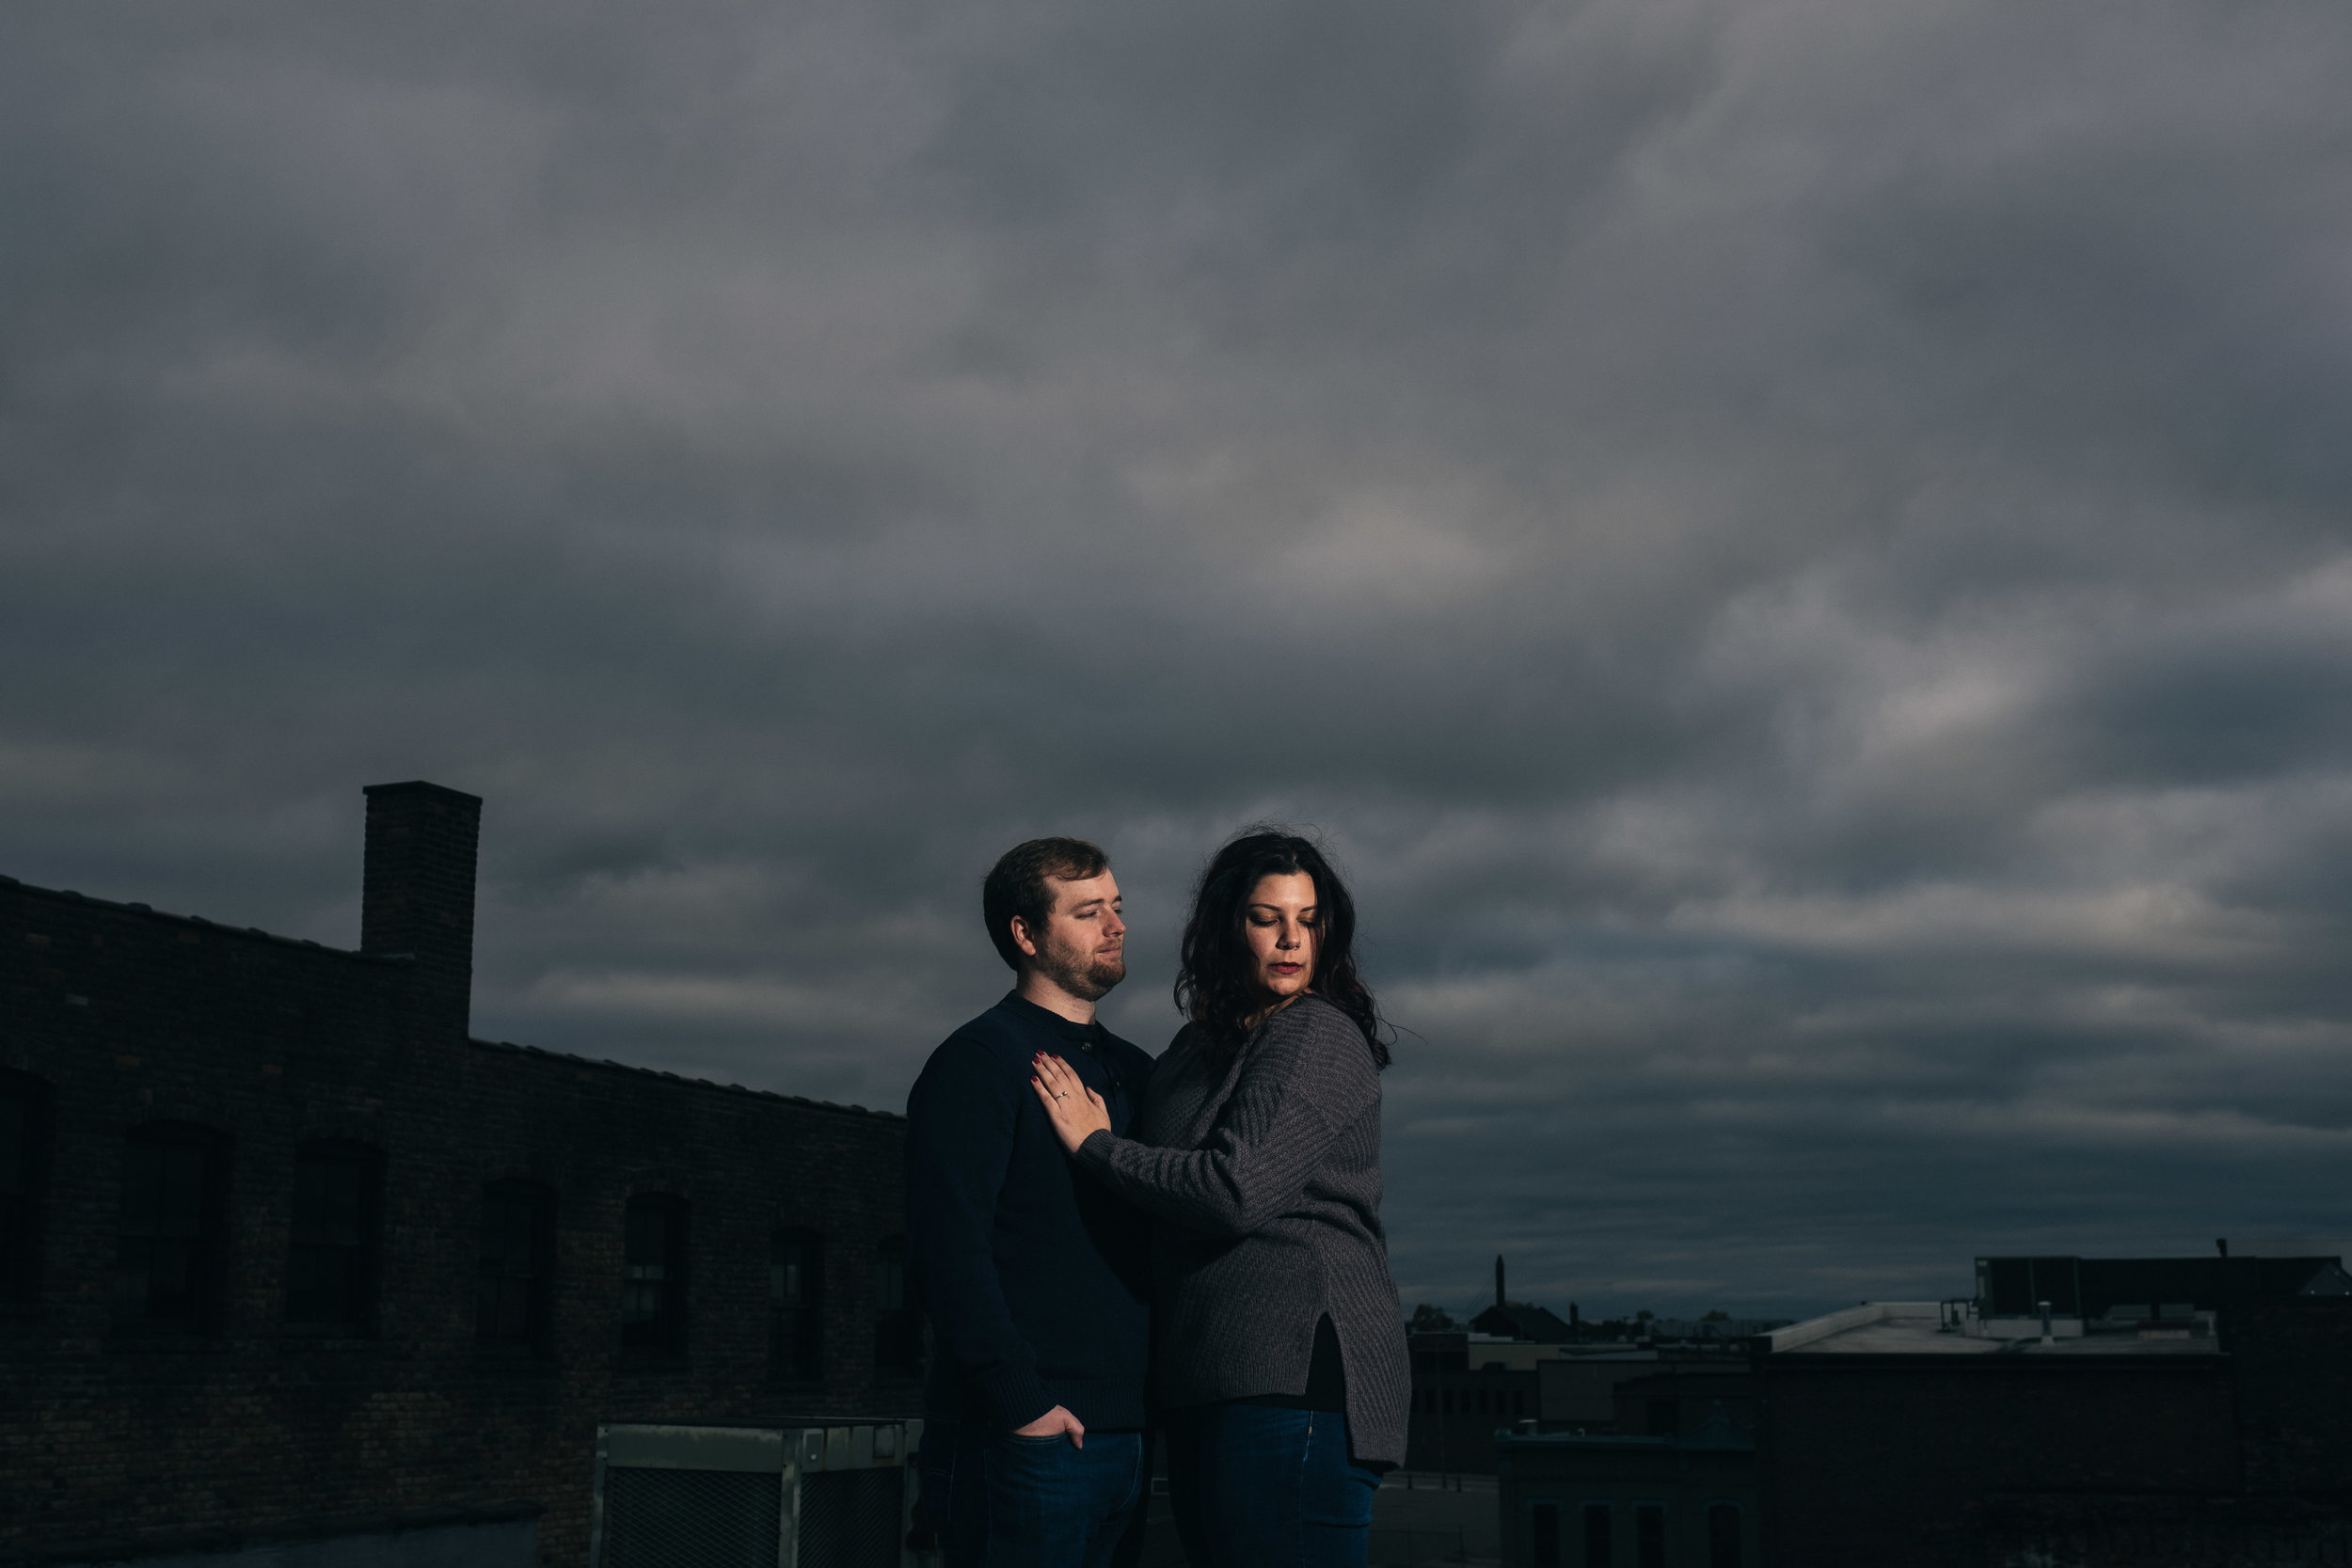 Downtown Toledo rooftop engagement picture.